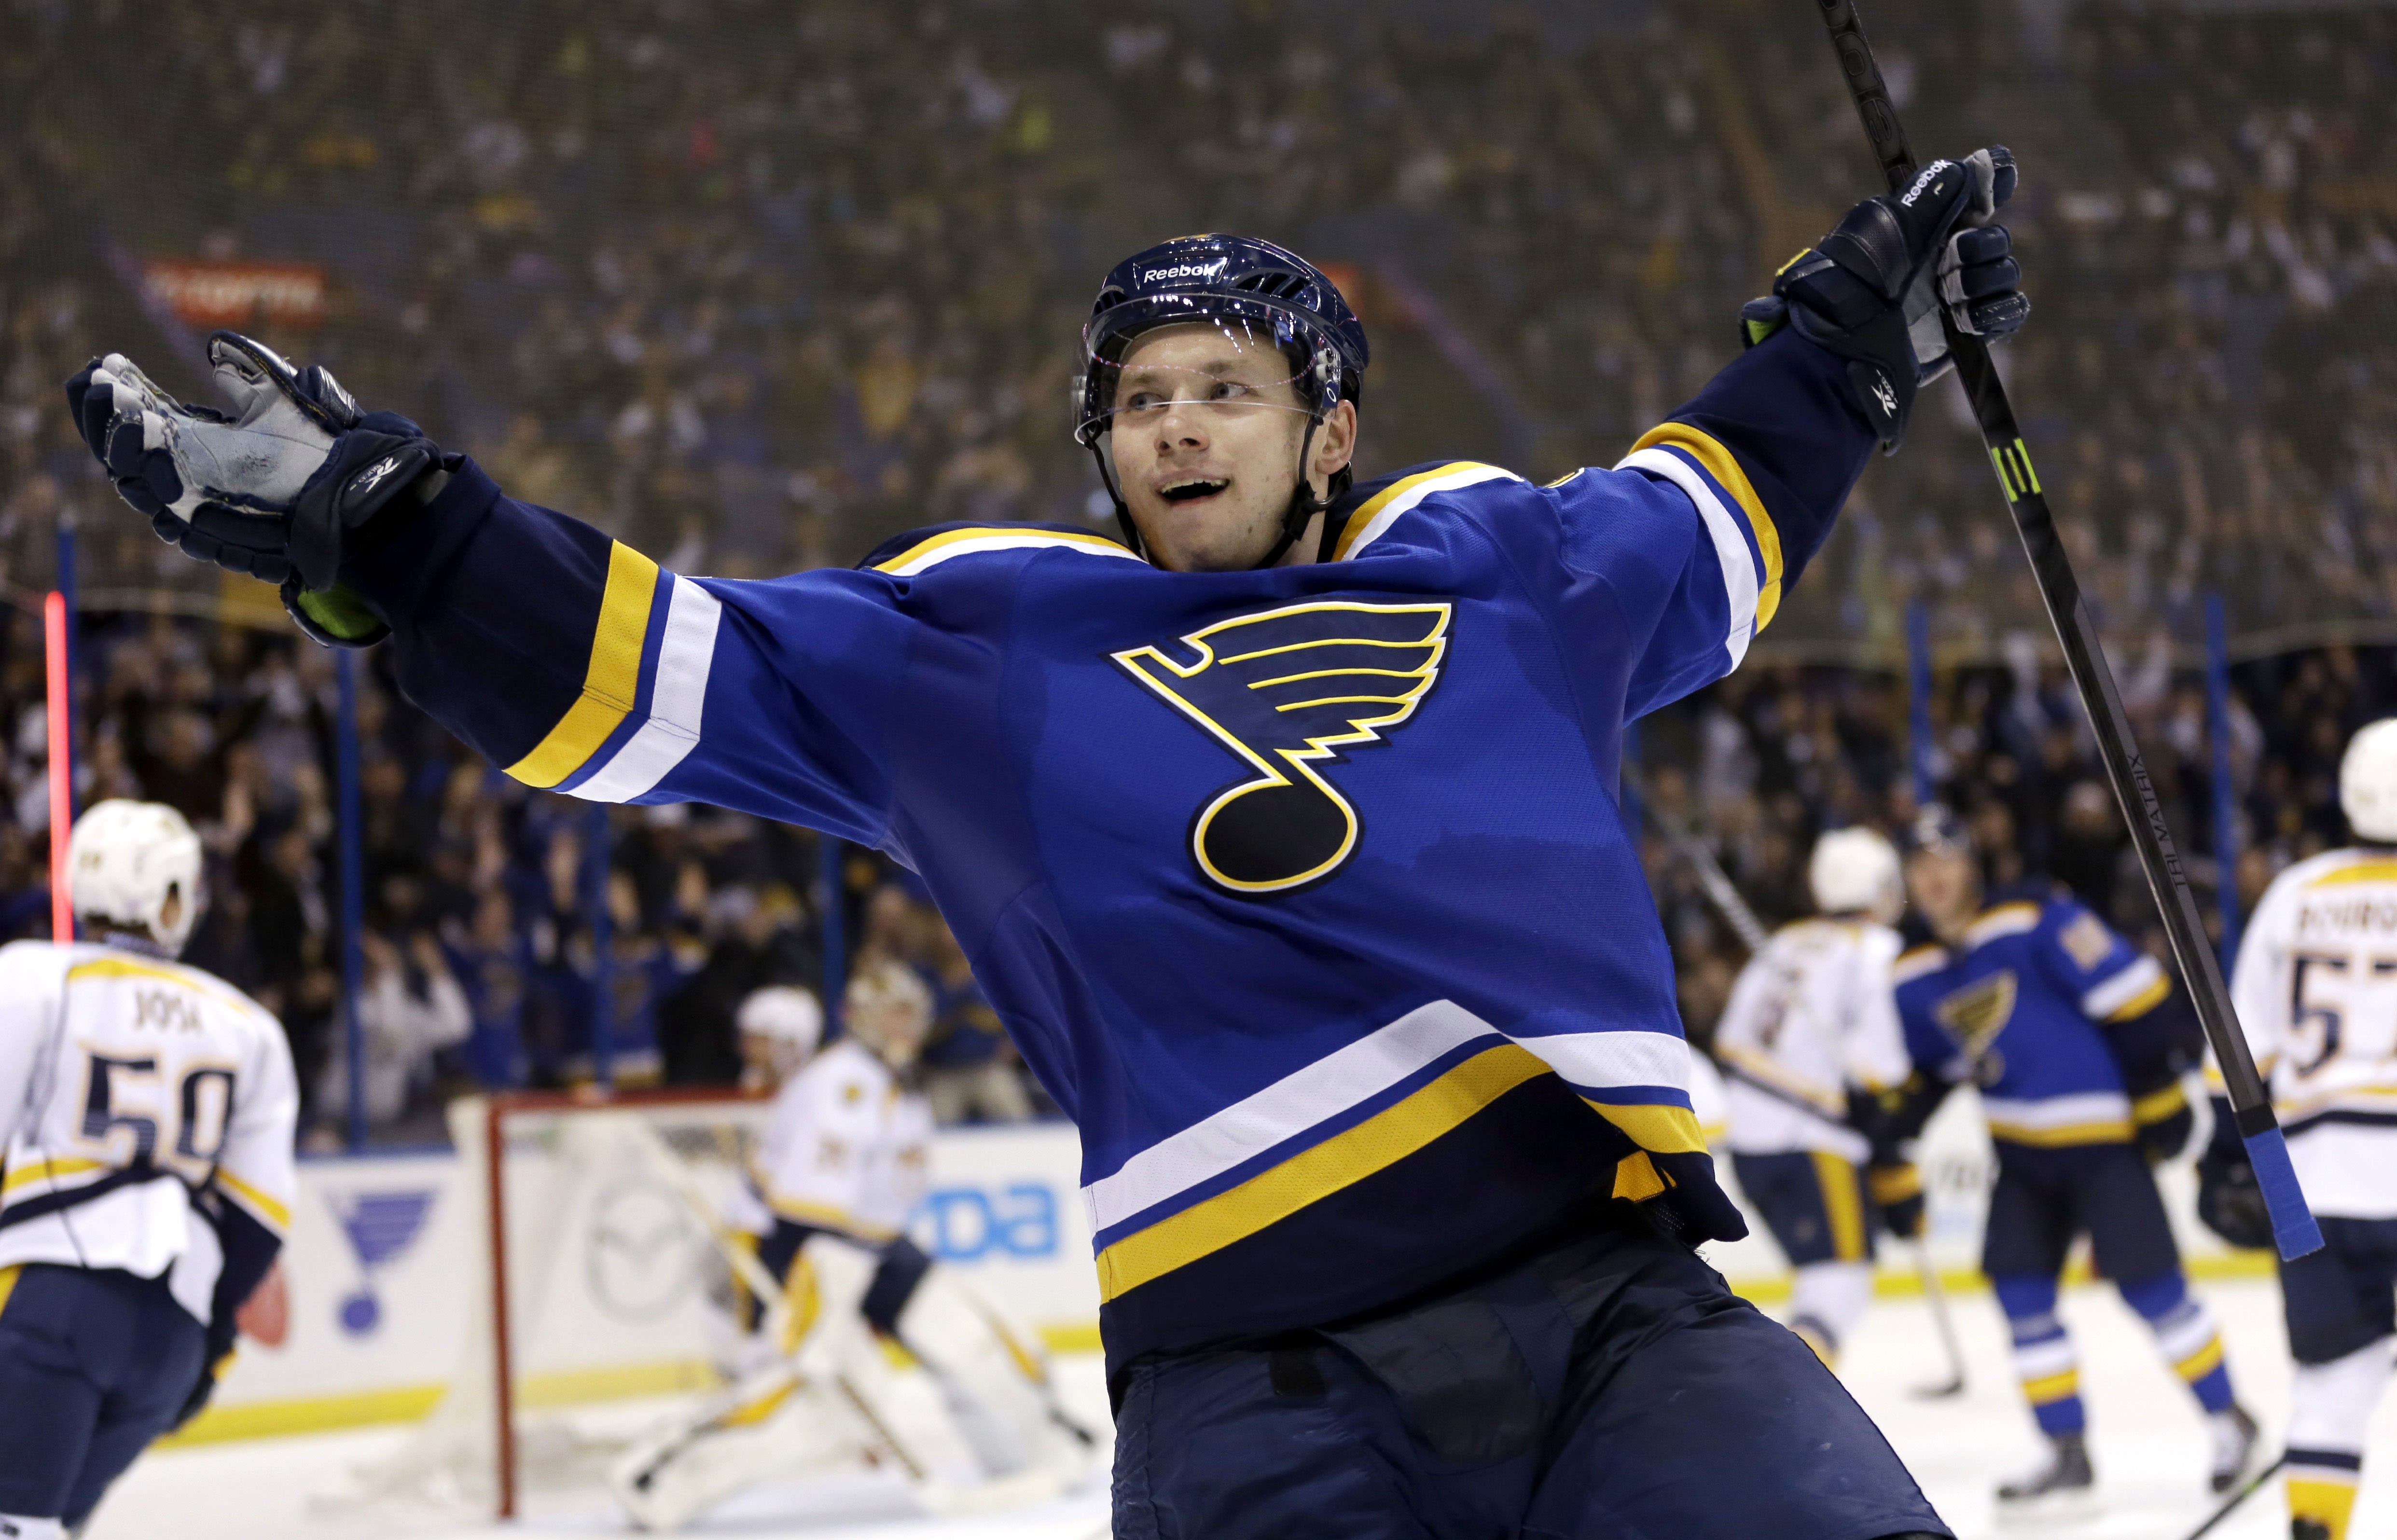 Tarasenko blossoming in 2nd full season with Blues